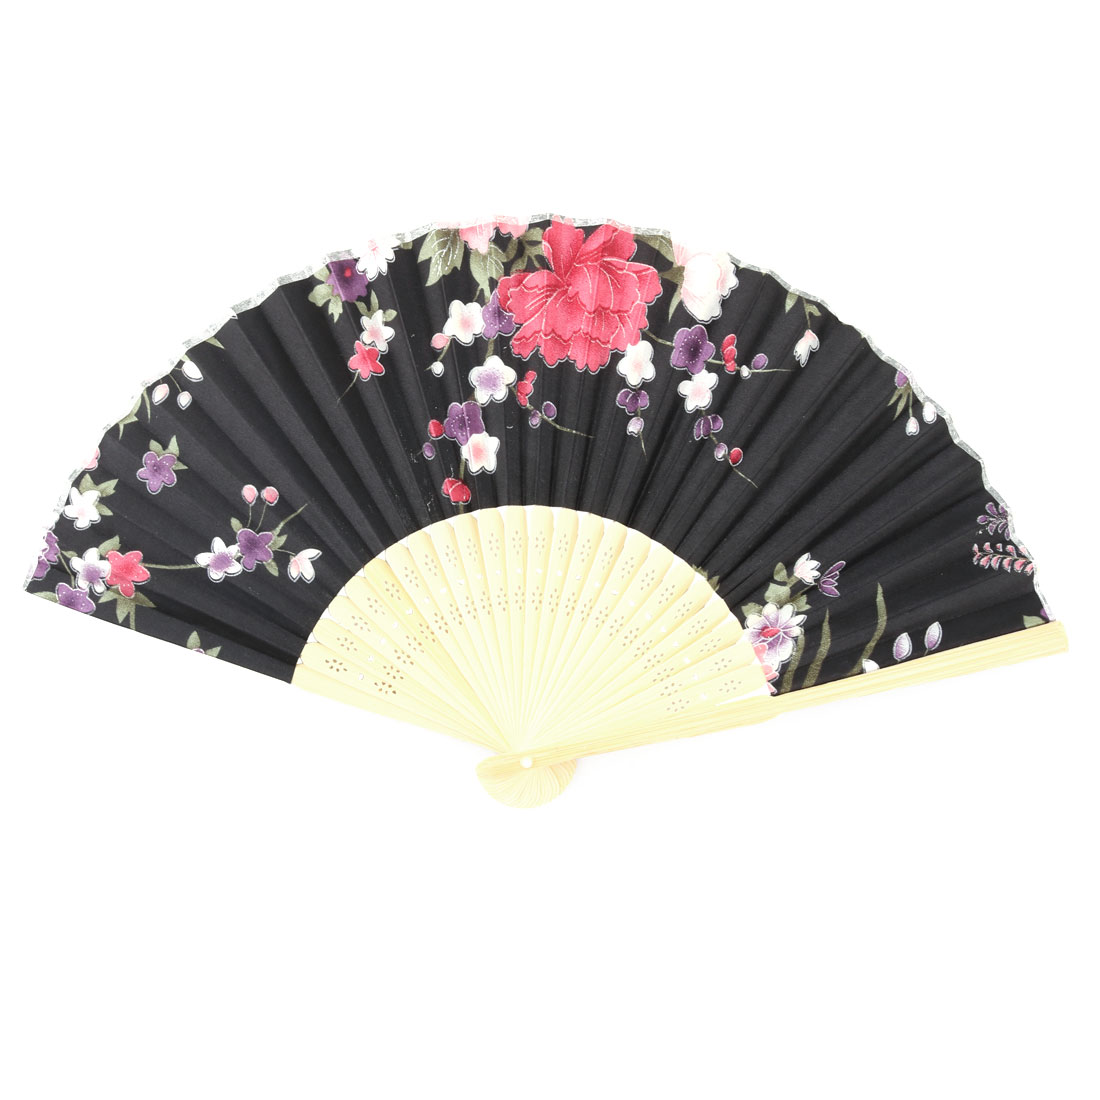 Dance Bamboo Frame Floral Pattern Chinese Style Artistic Handheld Folding Hand Fan Black Beige